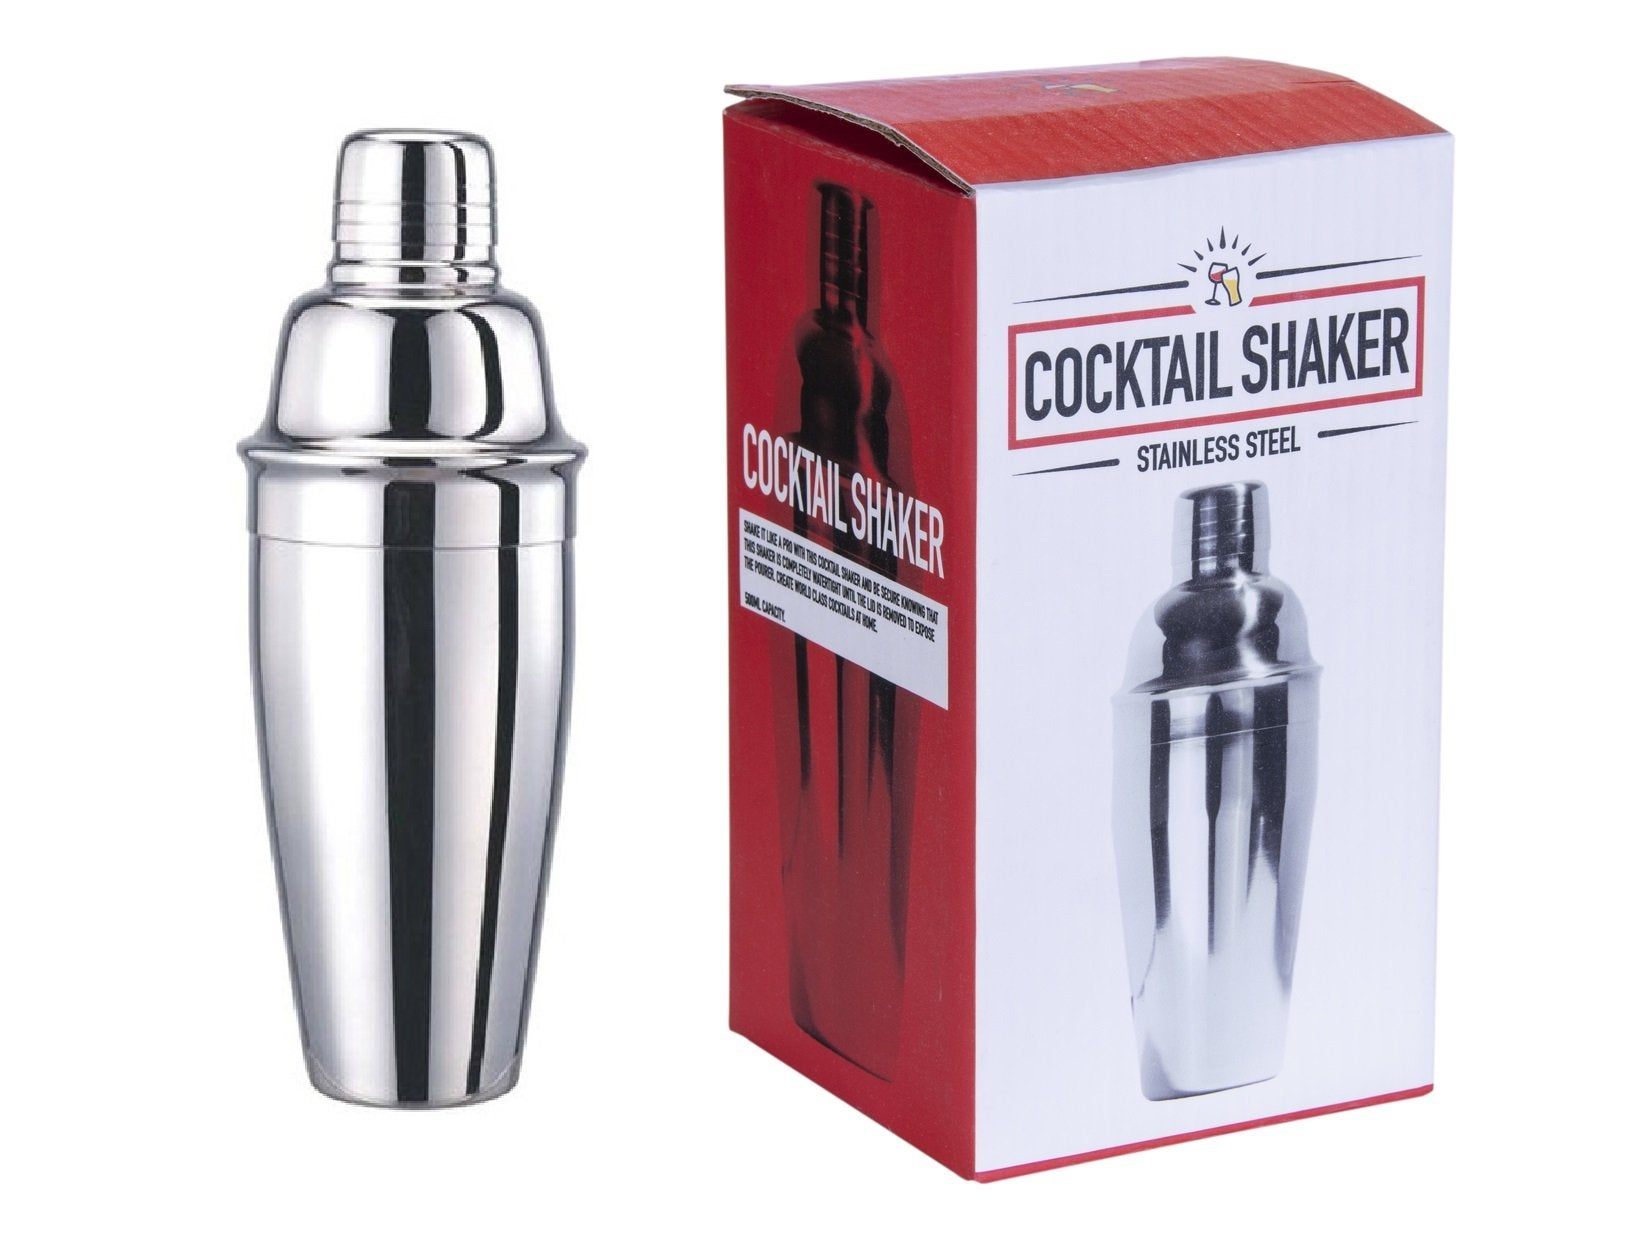 Party COCKTAIL SHAKER Stainless Steel Mixer Martini Spirits Bar Wine 500ml